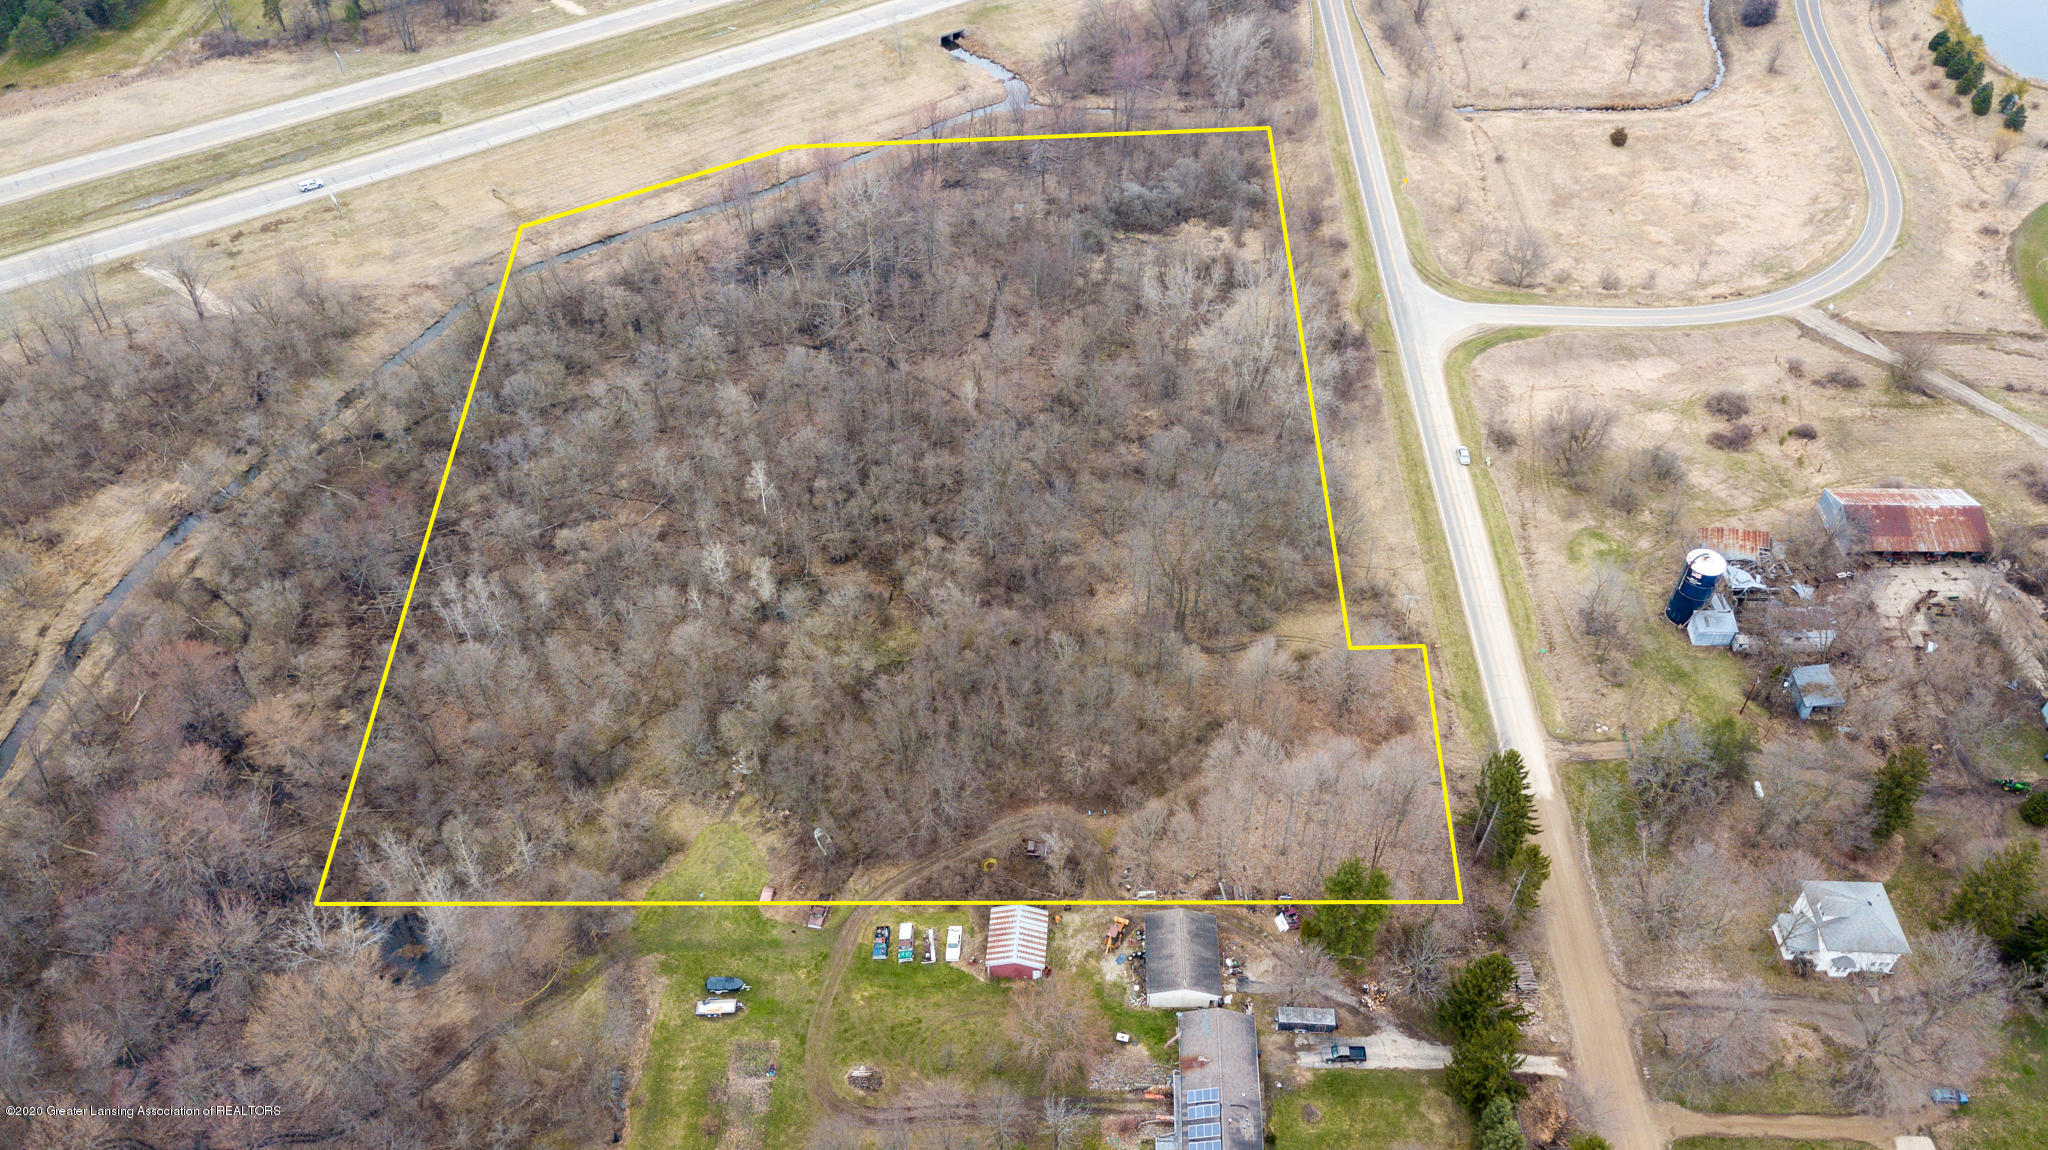 Vl S Lowell Rd - Lowell_Rd_VACANT_BROCK-1 - 5